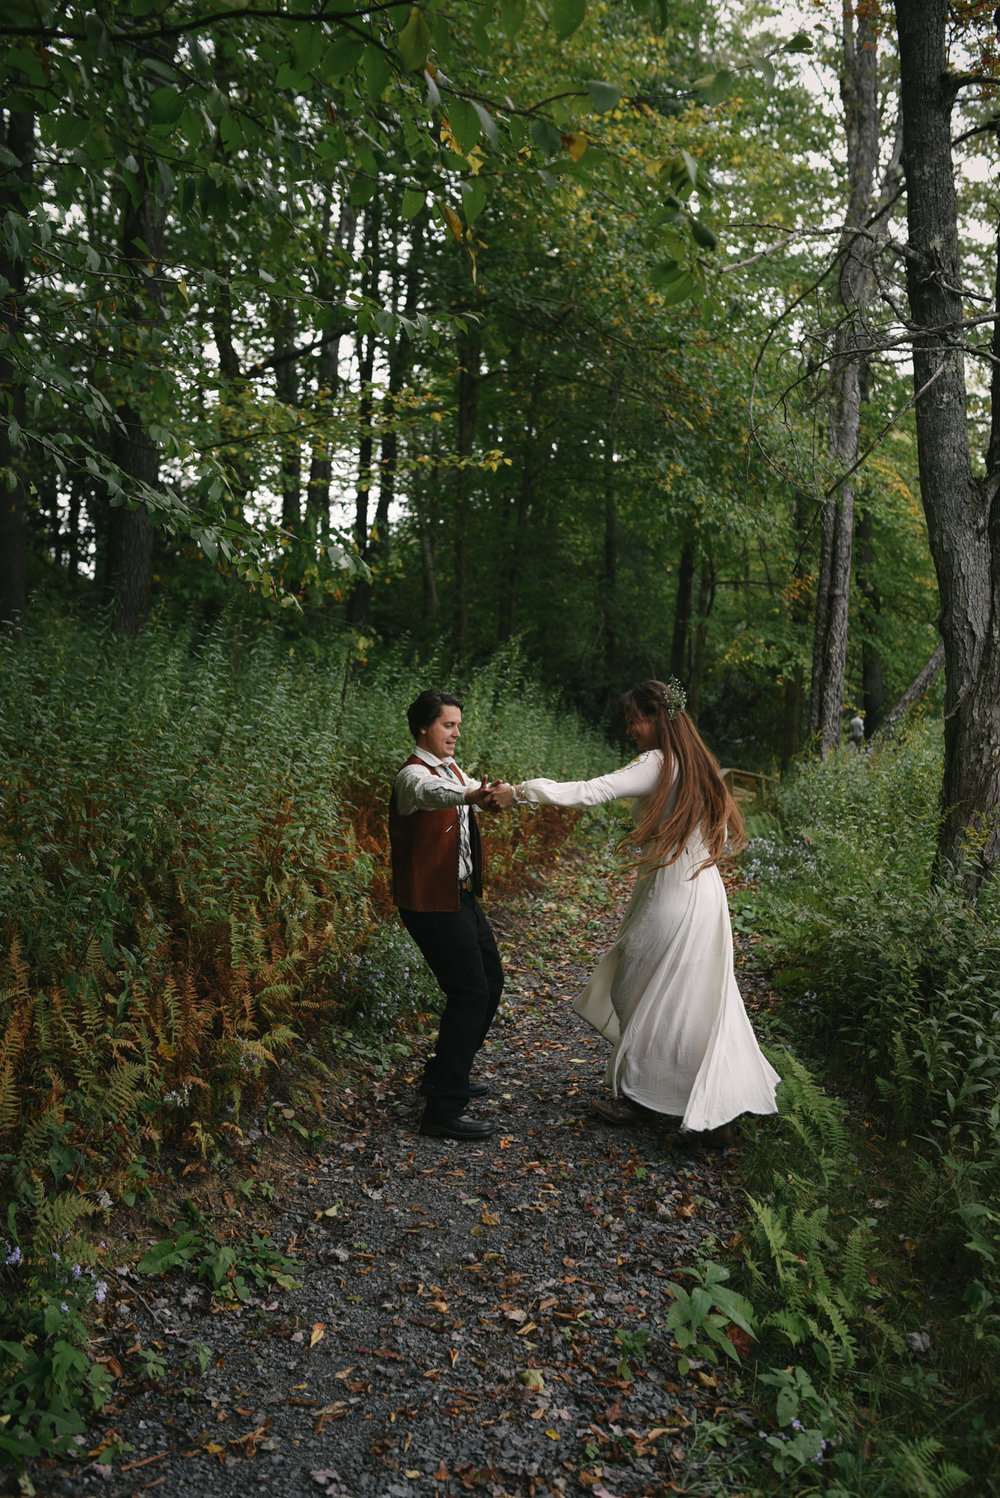 Mountain Wedding, Outdoors, Rustic, West Virginia, Maryland Wedding Photographer, DIY, Casual, bride and groom dancing on trail in the woods, boho, etherial